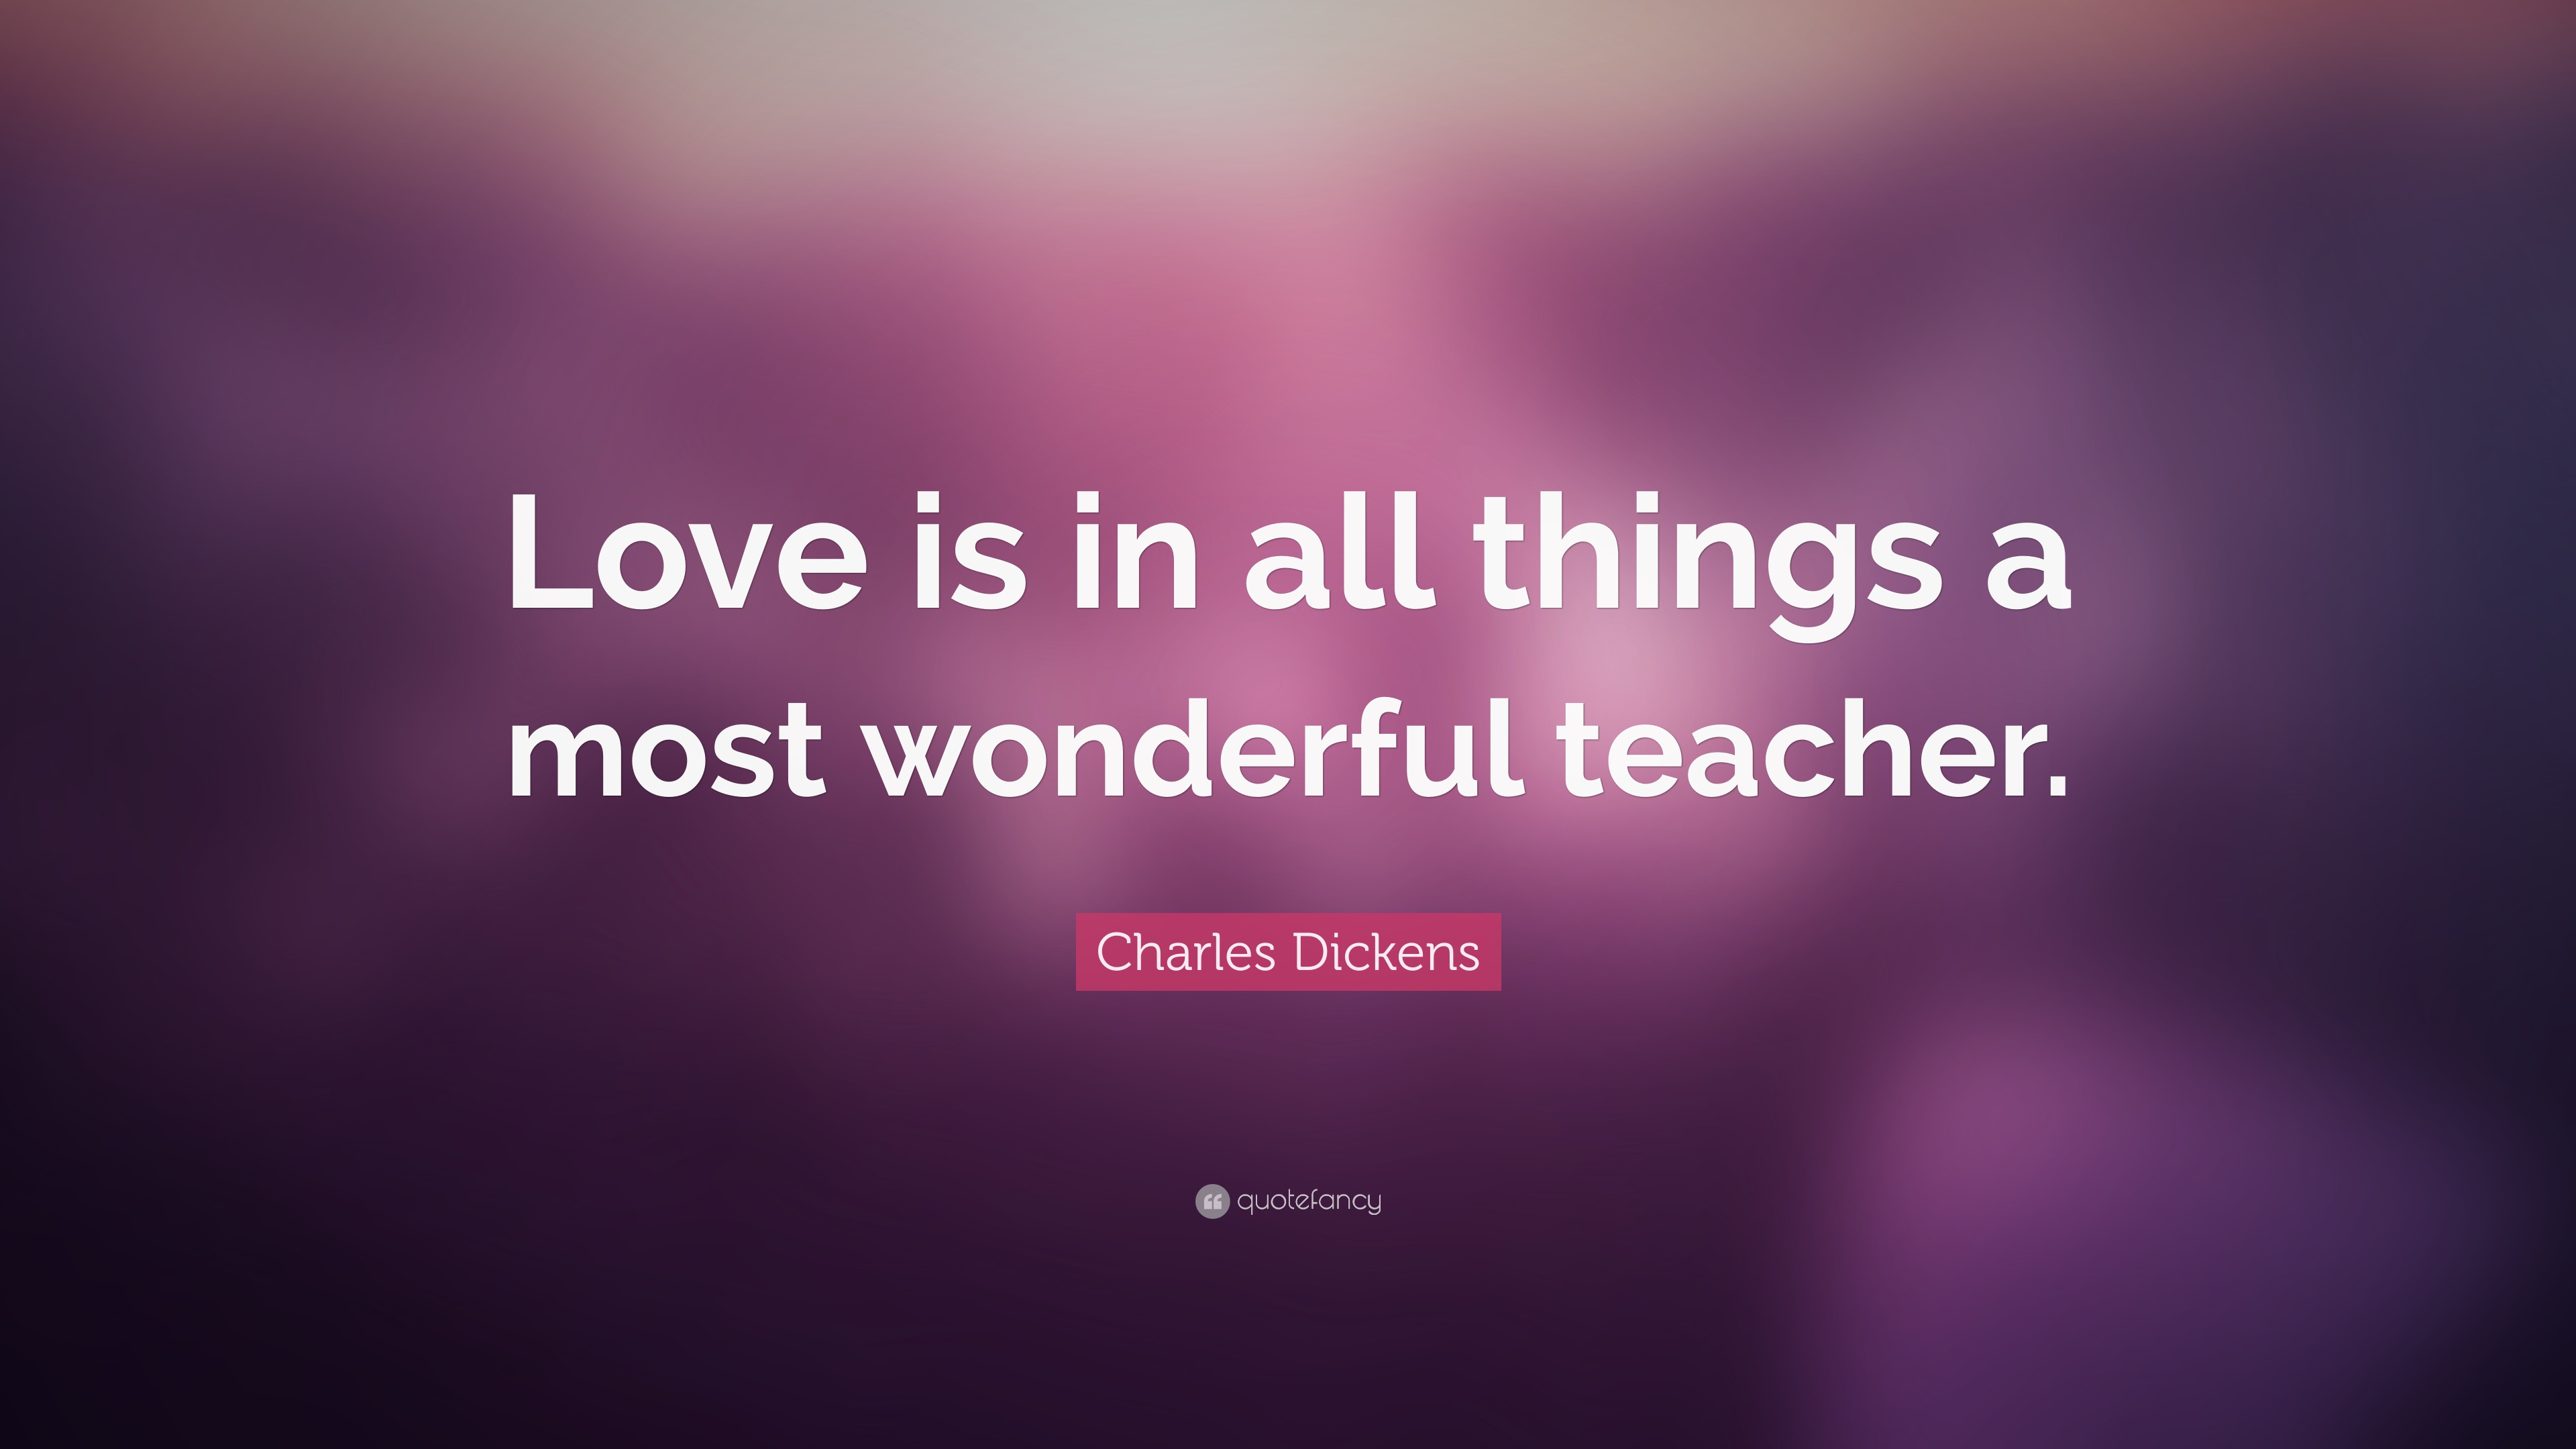 Charles Dickens Quote Love Is In All Things A Most Wonderful Teacher 12 Wallpapers